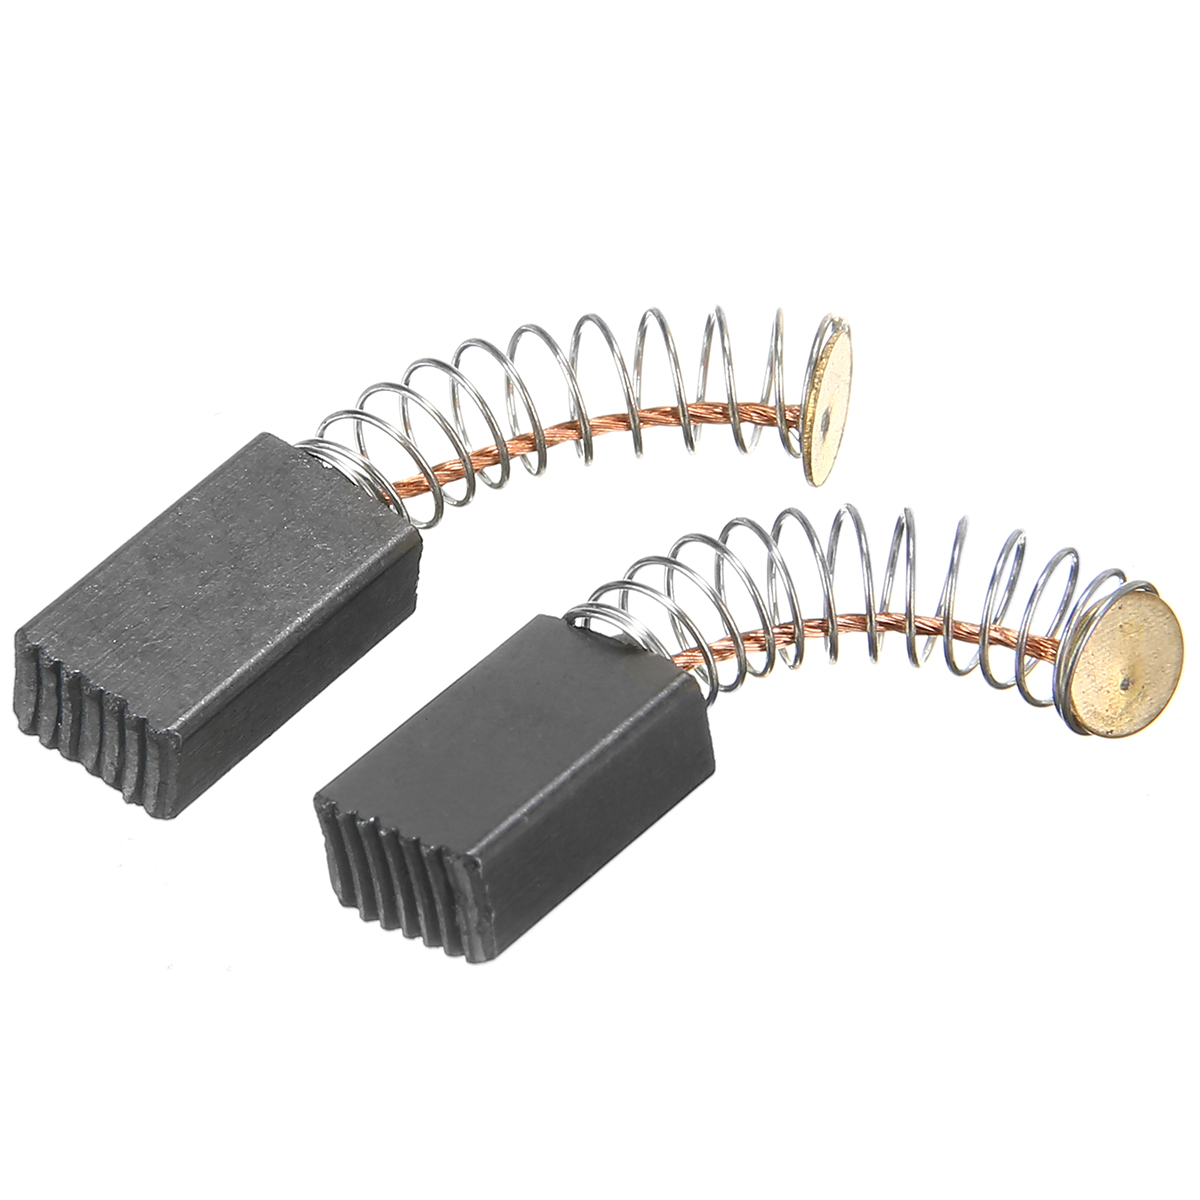 2 Pcs 5mm x 5mm x 13mm Motor Carbon Brushes for Power Tool